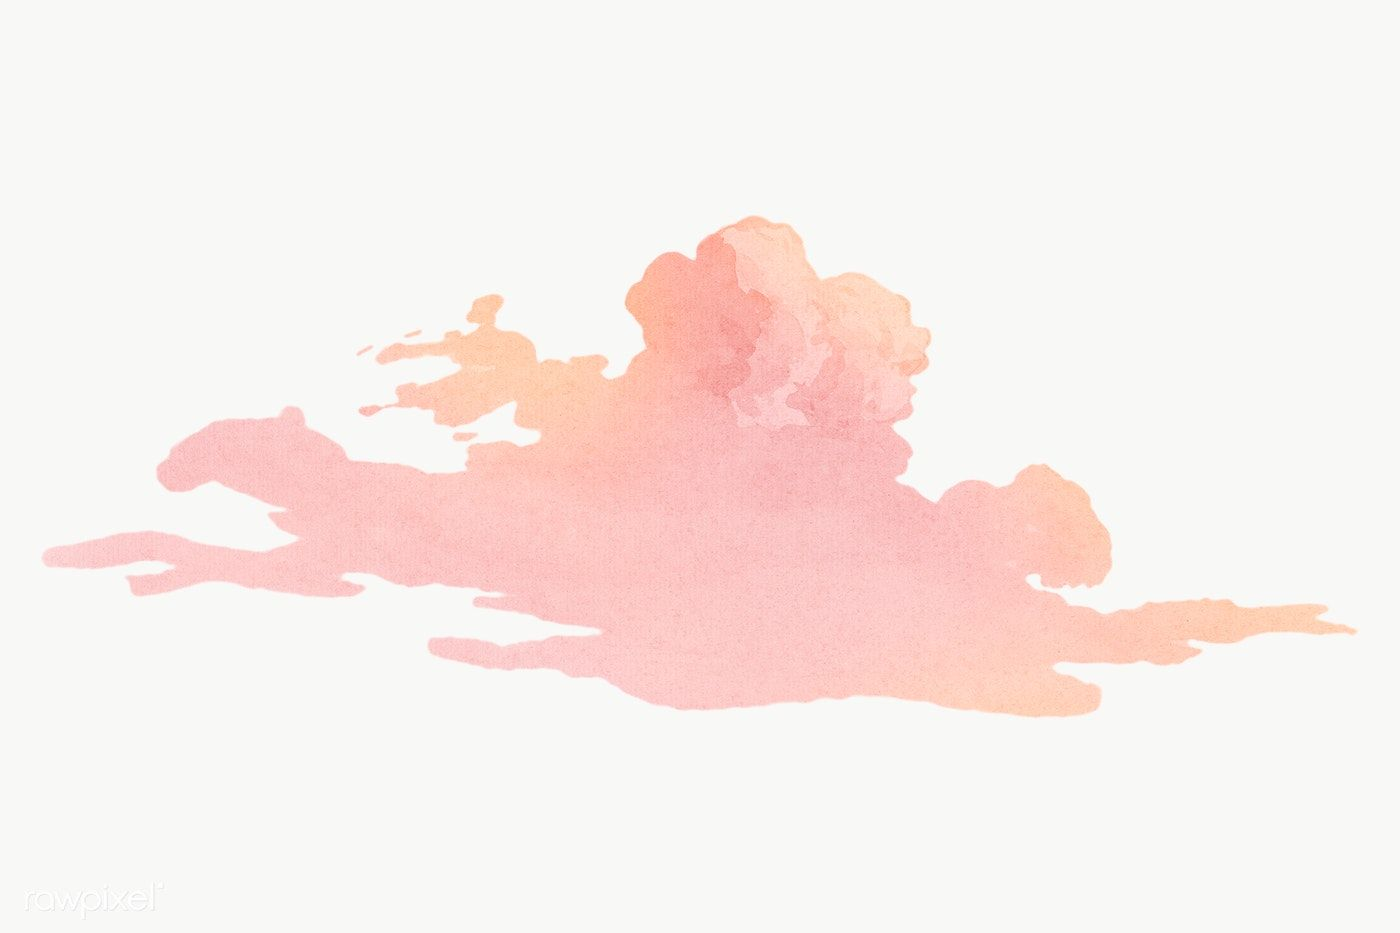 Download Premium Png Of Pastel Cloud Transparent Png 2194565 In 2020 Cloud Illustration Pastel Clouds Pink Clouds Wallpaper